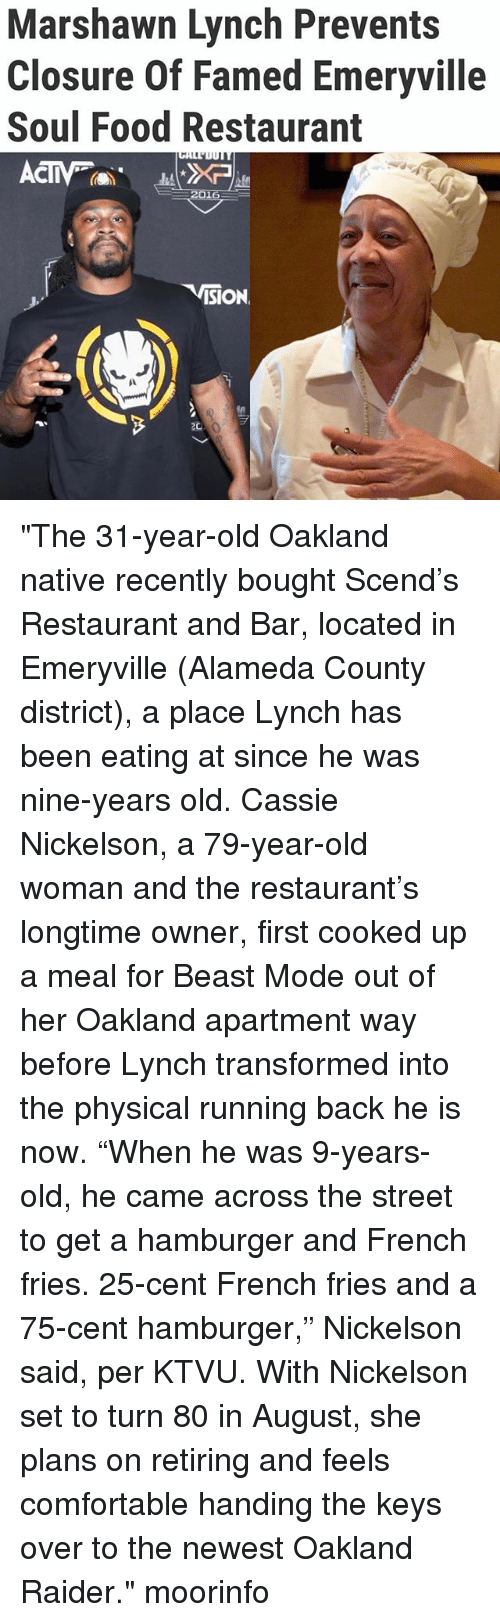 """ktvu: Marshawn Lynch Prevents  Closure Of Famed Emeryville  Soul Food Restaurant  CIV  ISION """"The 31-year-old Oakland native recently bought Scend's Restaurant and Bar, located in Emeryville (Alameda County district), a place Lynch has been eating at since he was nine-years old. Cassie Nickelson, a 79-year-old woman and the restaurant's longtime owner, first cooked up a meal for Beast Mode out of her Oakland apartment way before Lynch transformed into the physical running back he is now. """"When he was 9-years-old, he came across the street to get a hamburger and French fries. 25-cent French fries and a 75-cent hamburger,"""" Nickelson said, per KTVU. With Nickelson set to turn 80 in August, she plans on retiring and feels comfortable handing the keys over to the newest Oakland Raider."""" moorinfo"""